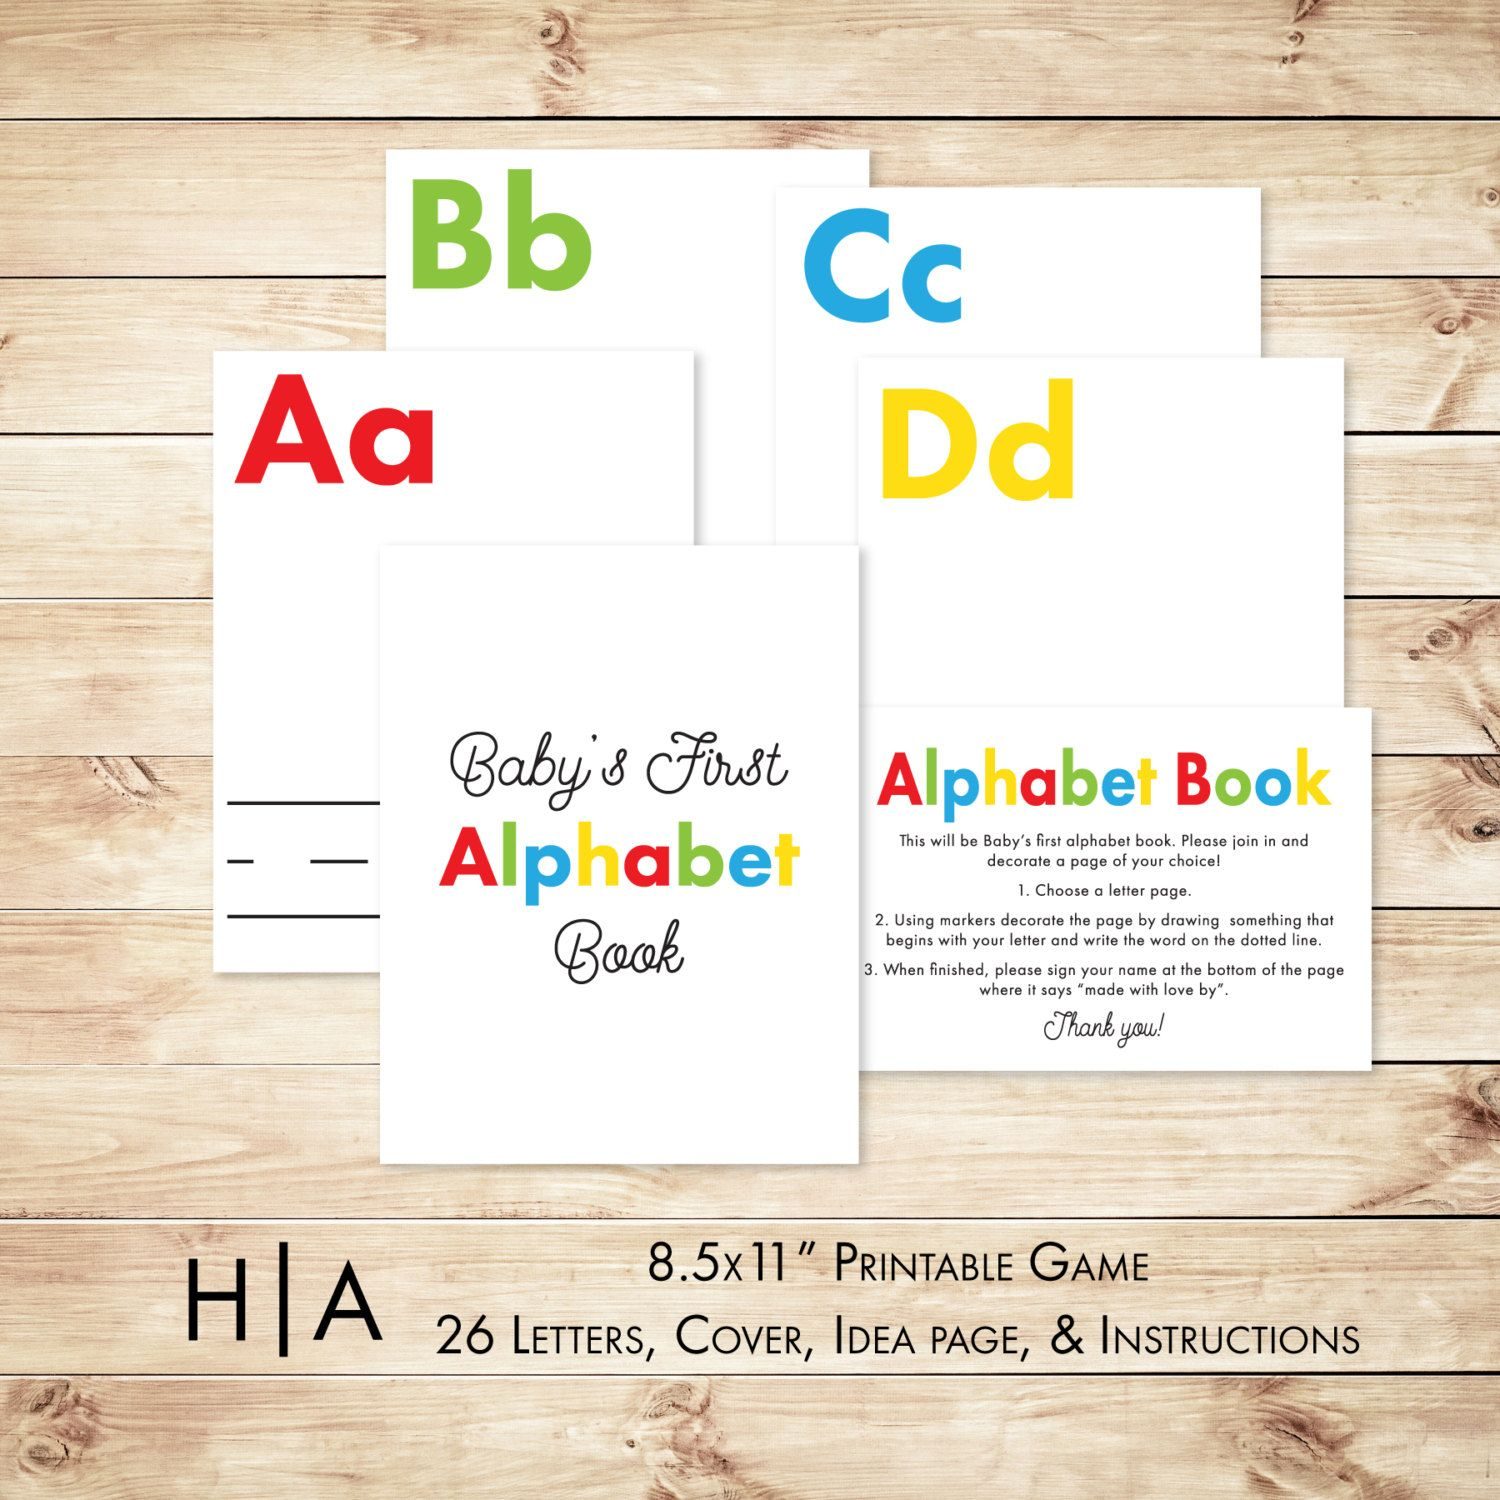 "Fancy Alphabet Book Game Diy Baby Shower Activity Game 8.5X11"" Baby's regarding Baby Shower Activities"